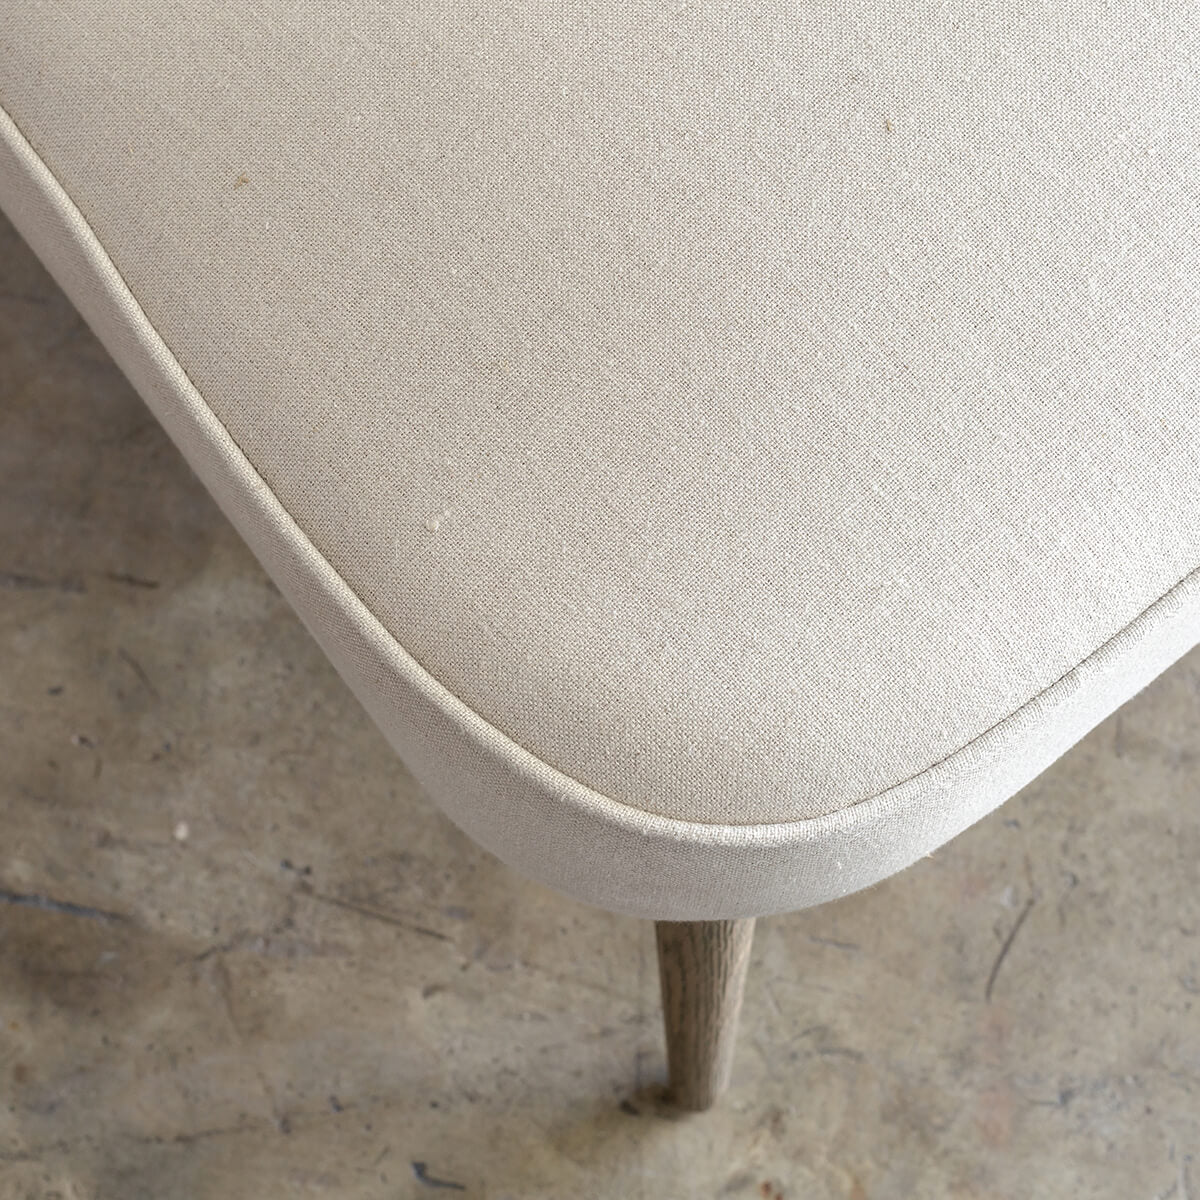 FAULKES SHELL BACK ARM CHAIR  |  FLAX NATURAL 100%  LINEN